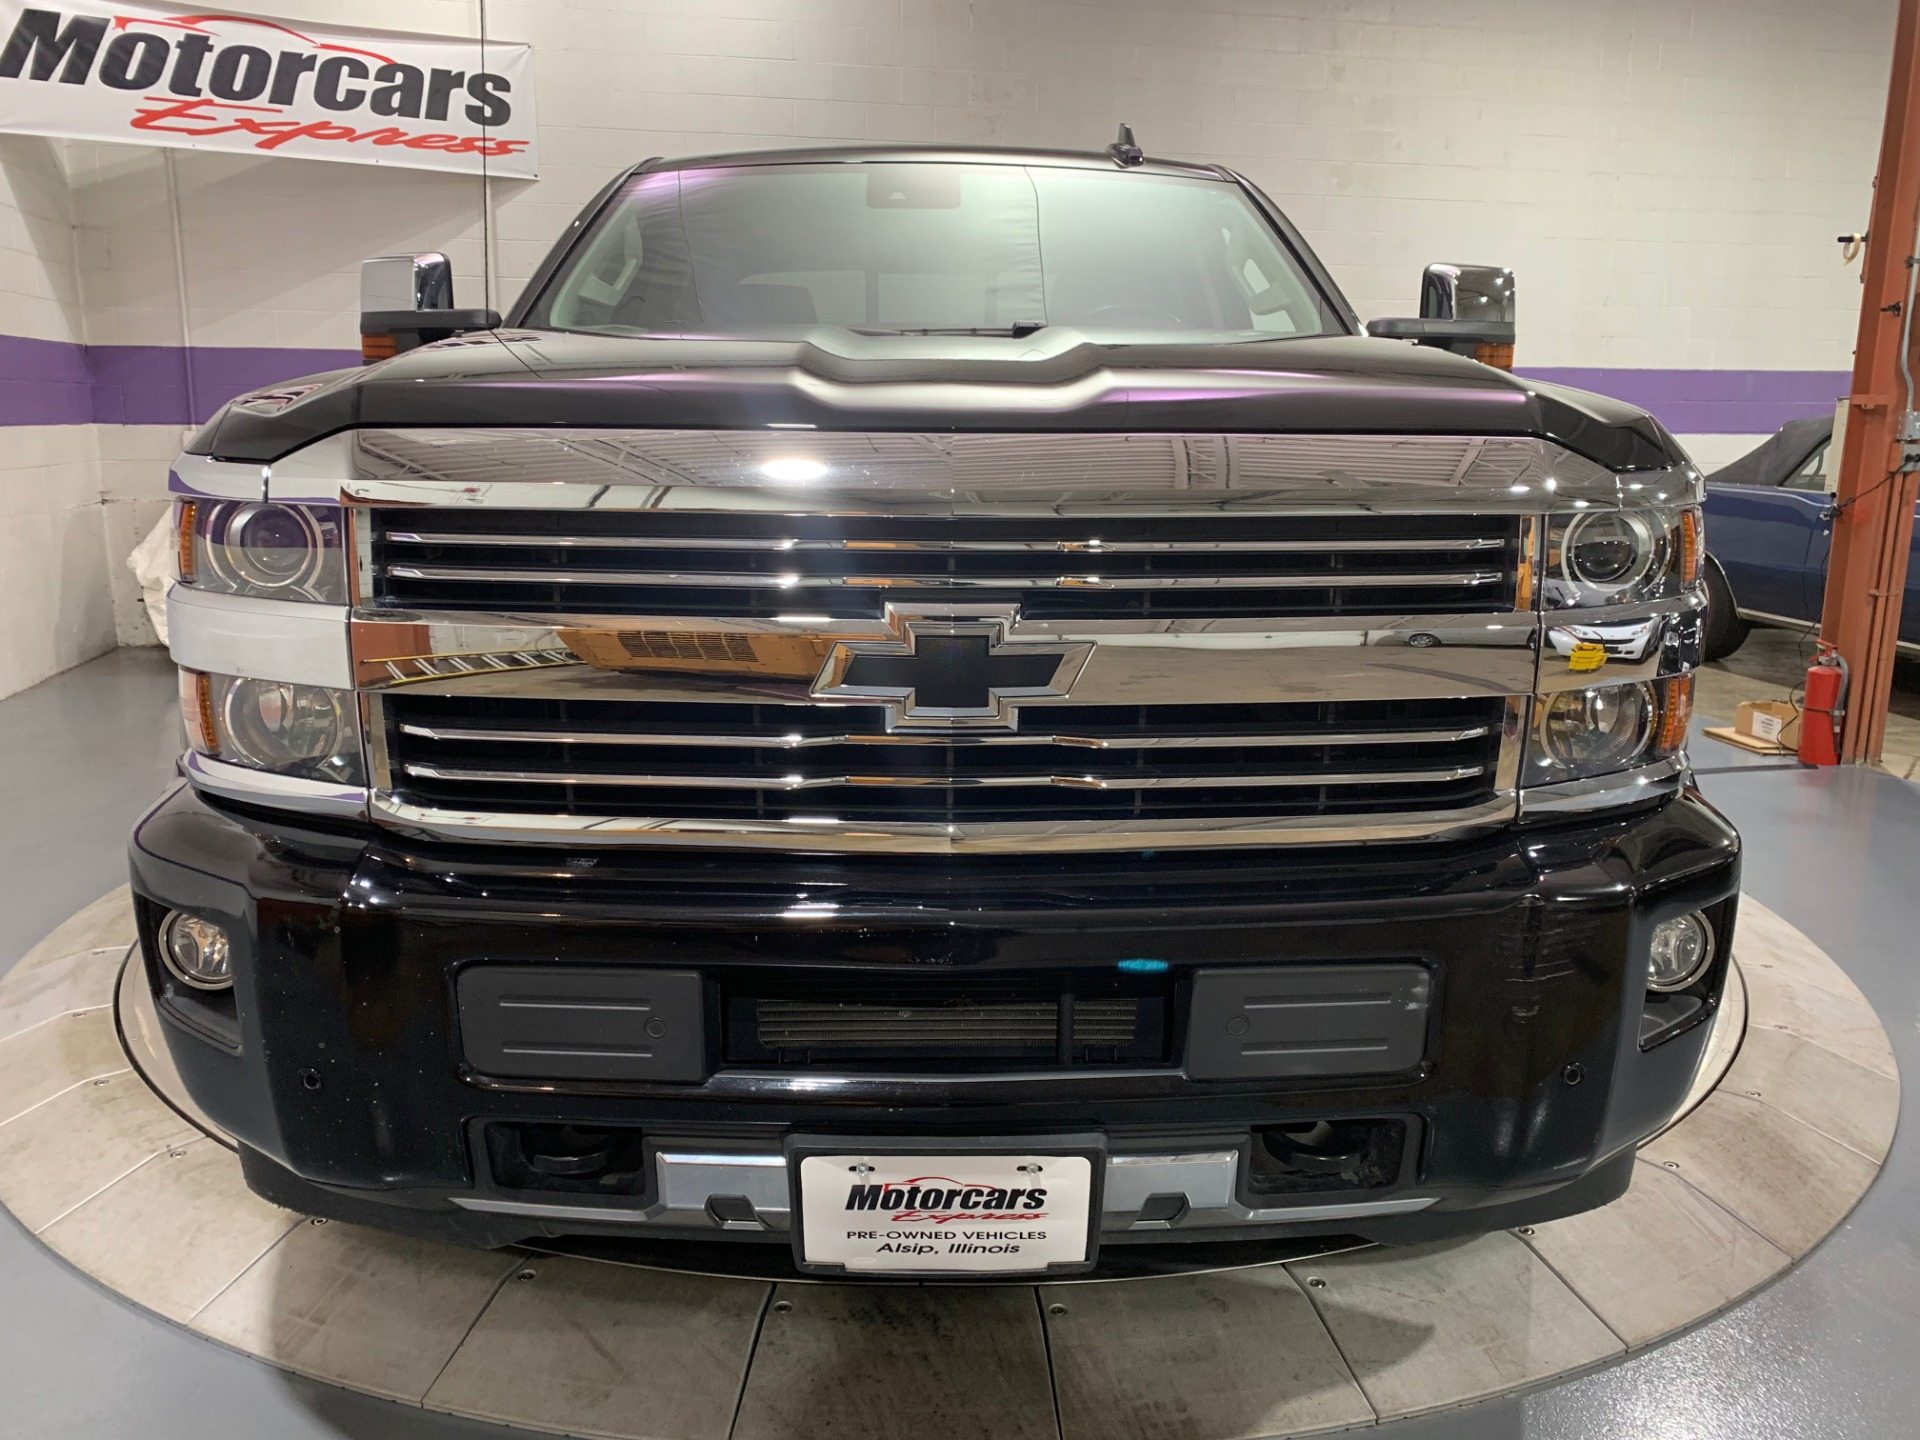 2016 Chevrolet Silverado 2500hd Diesel High Country Stock Mce2 For